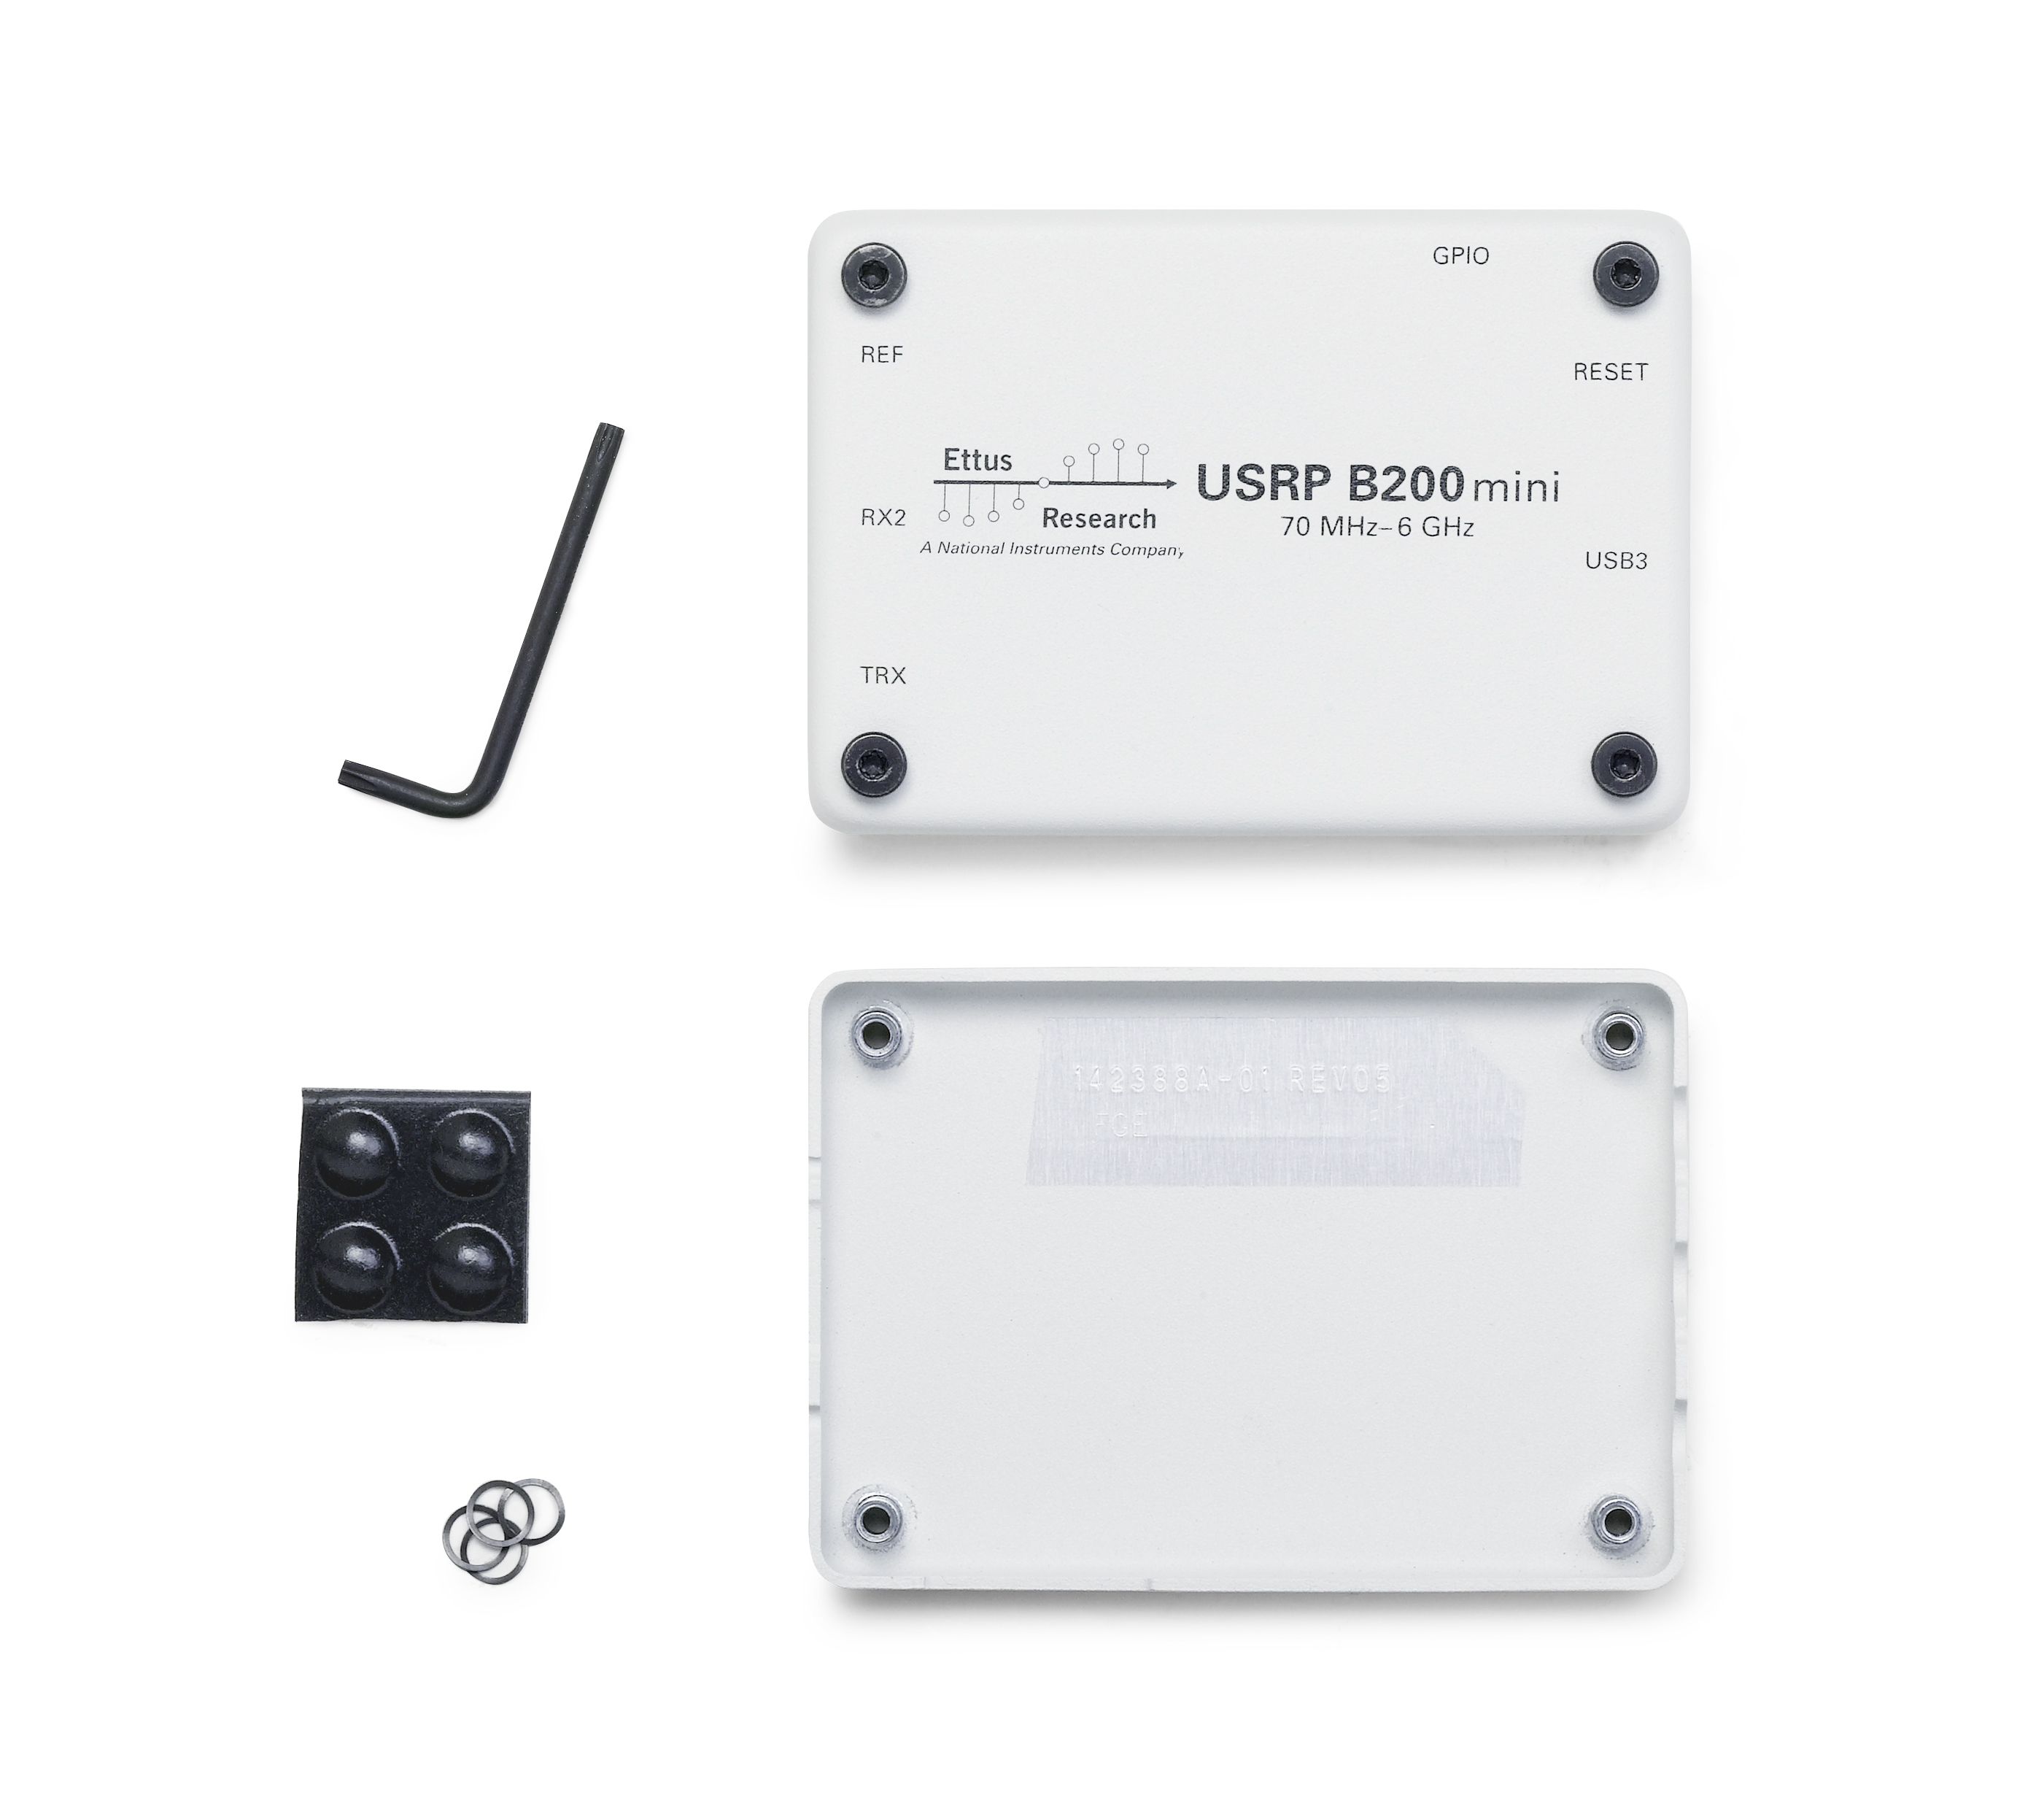 Enclosure kit for USRP B200mini (C-Grade)